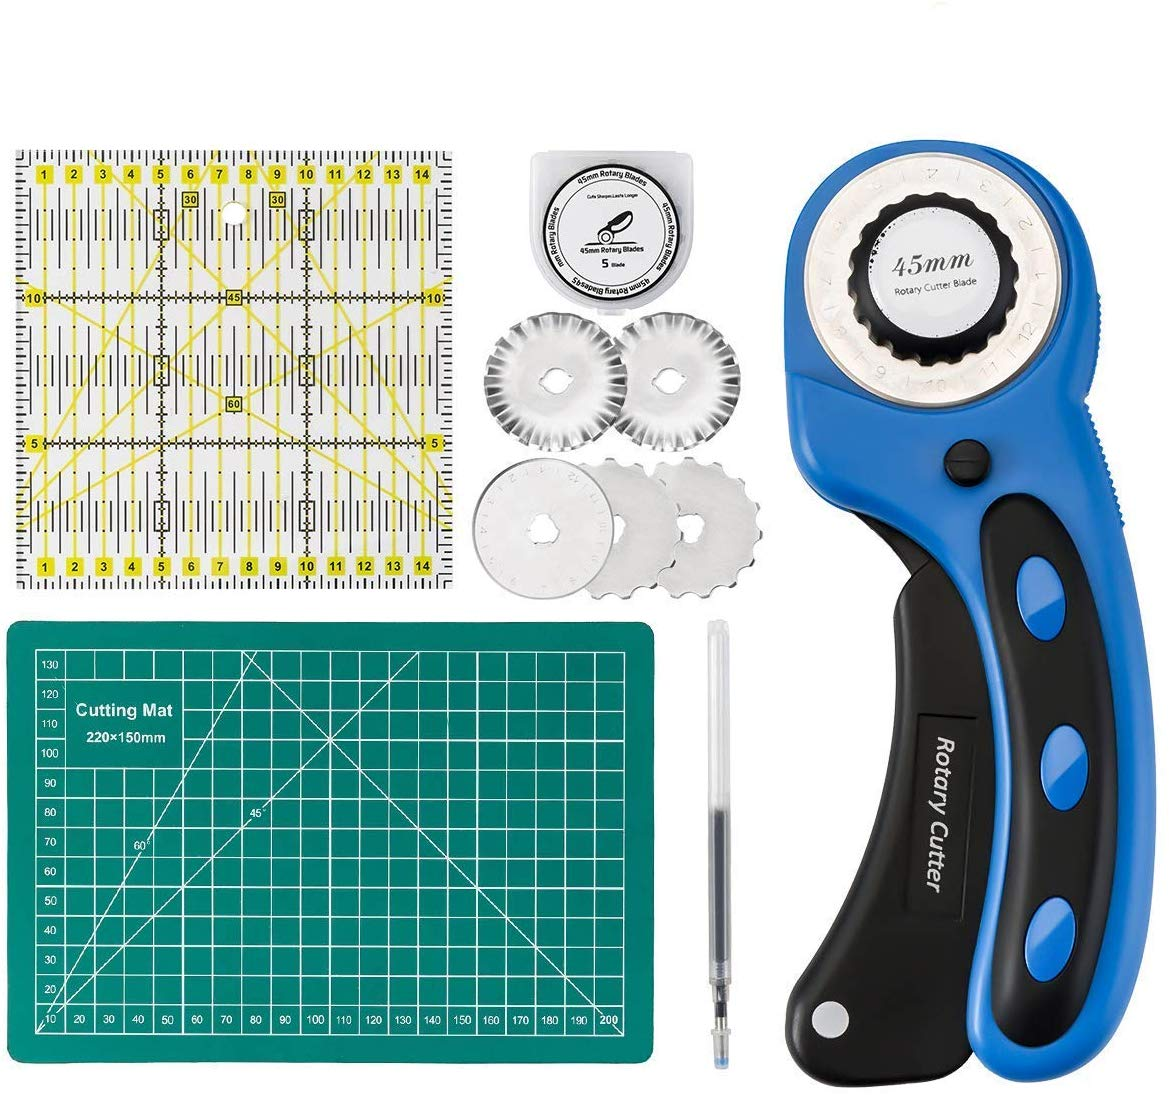 Cozywind 45mm Rotary Cutter with Blades